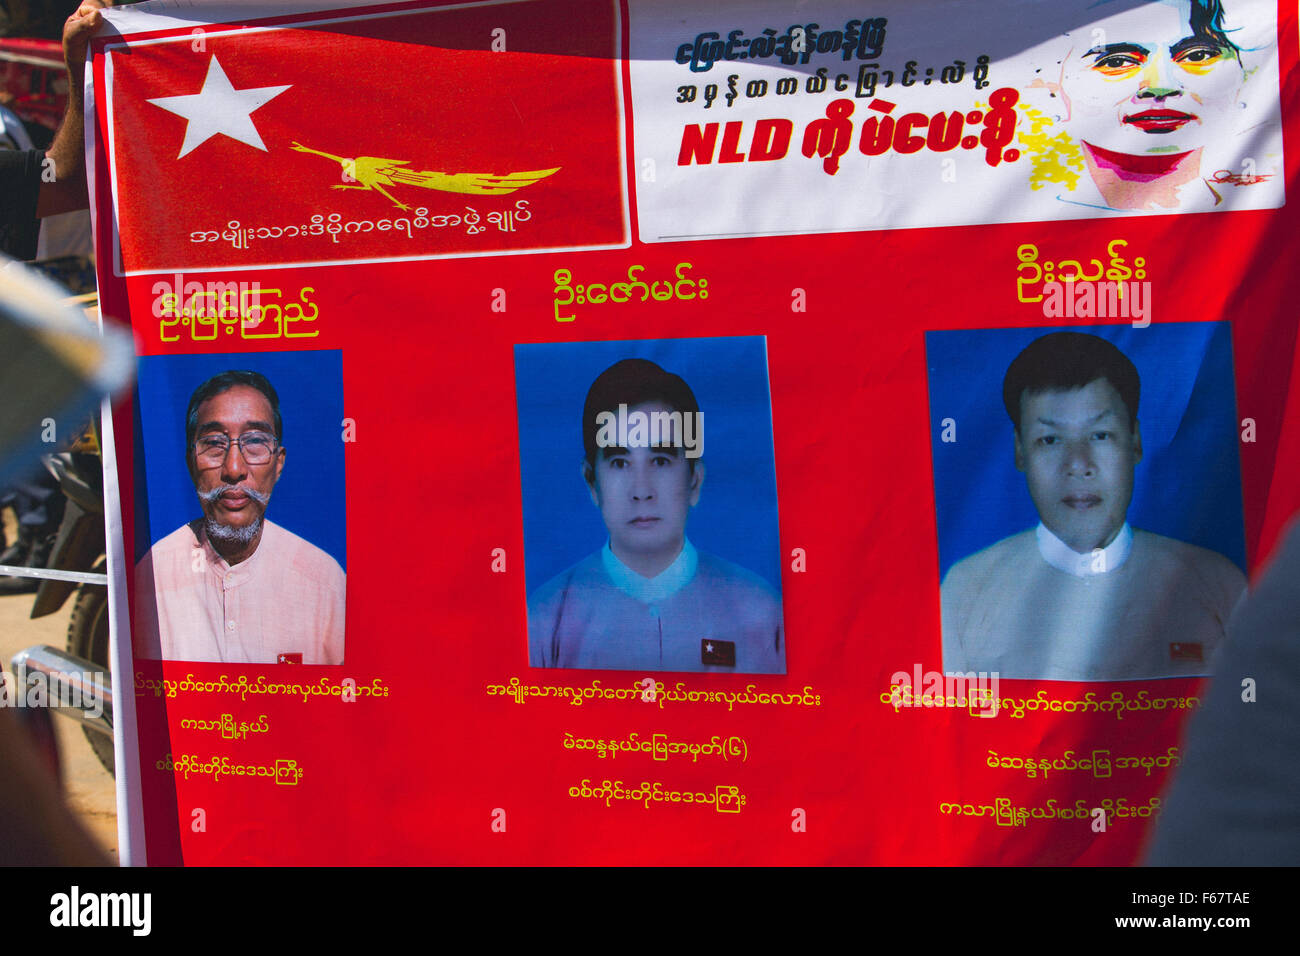 NLD election poster candidates - Stock Image